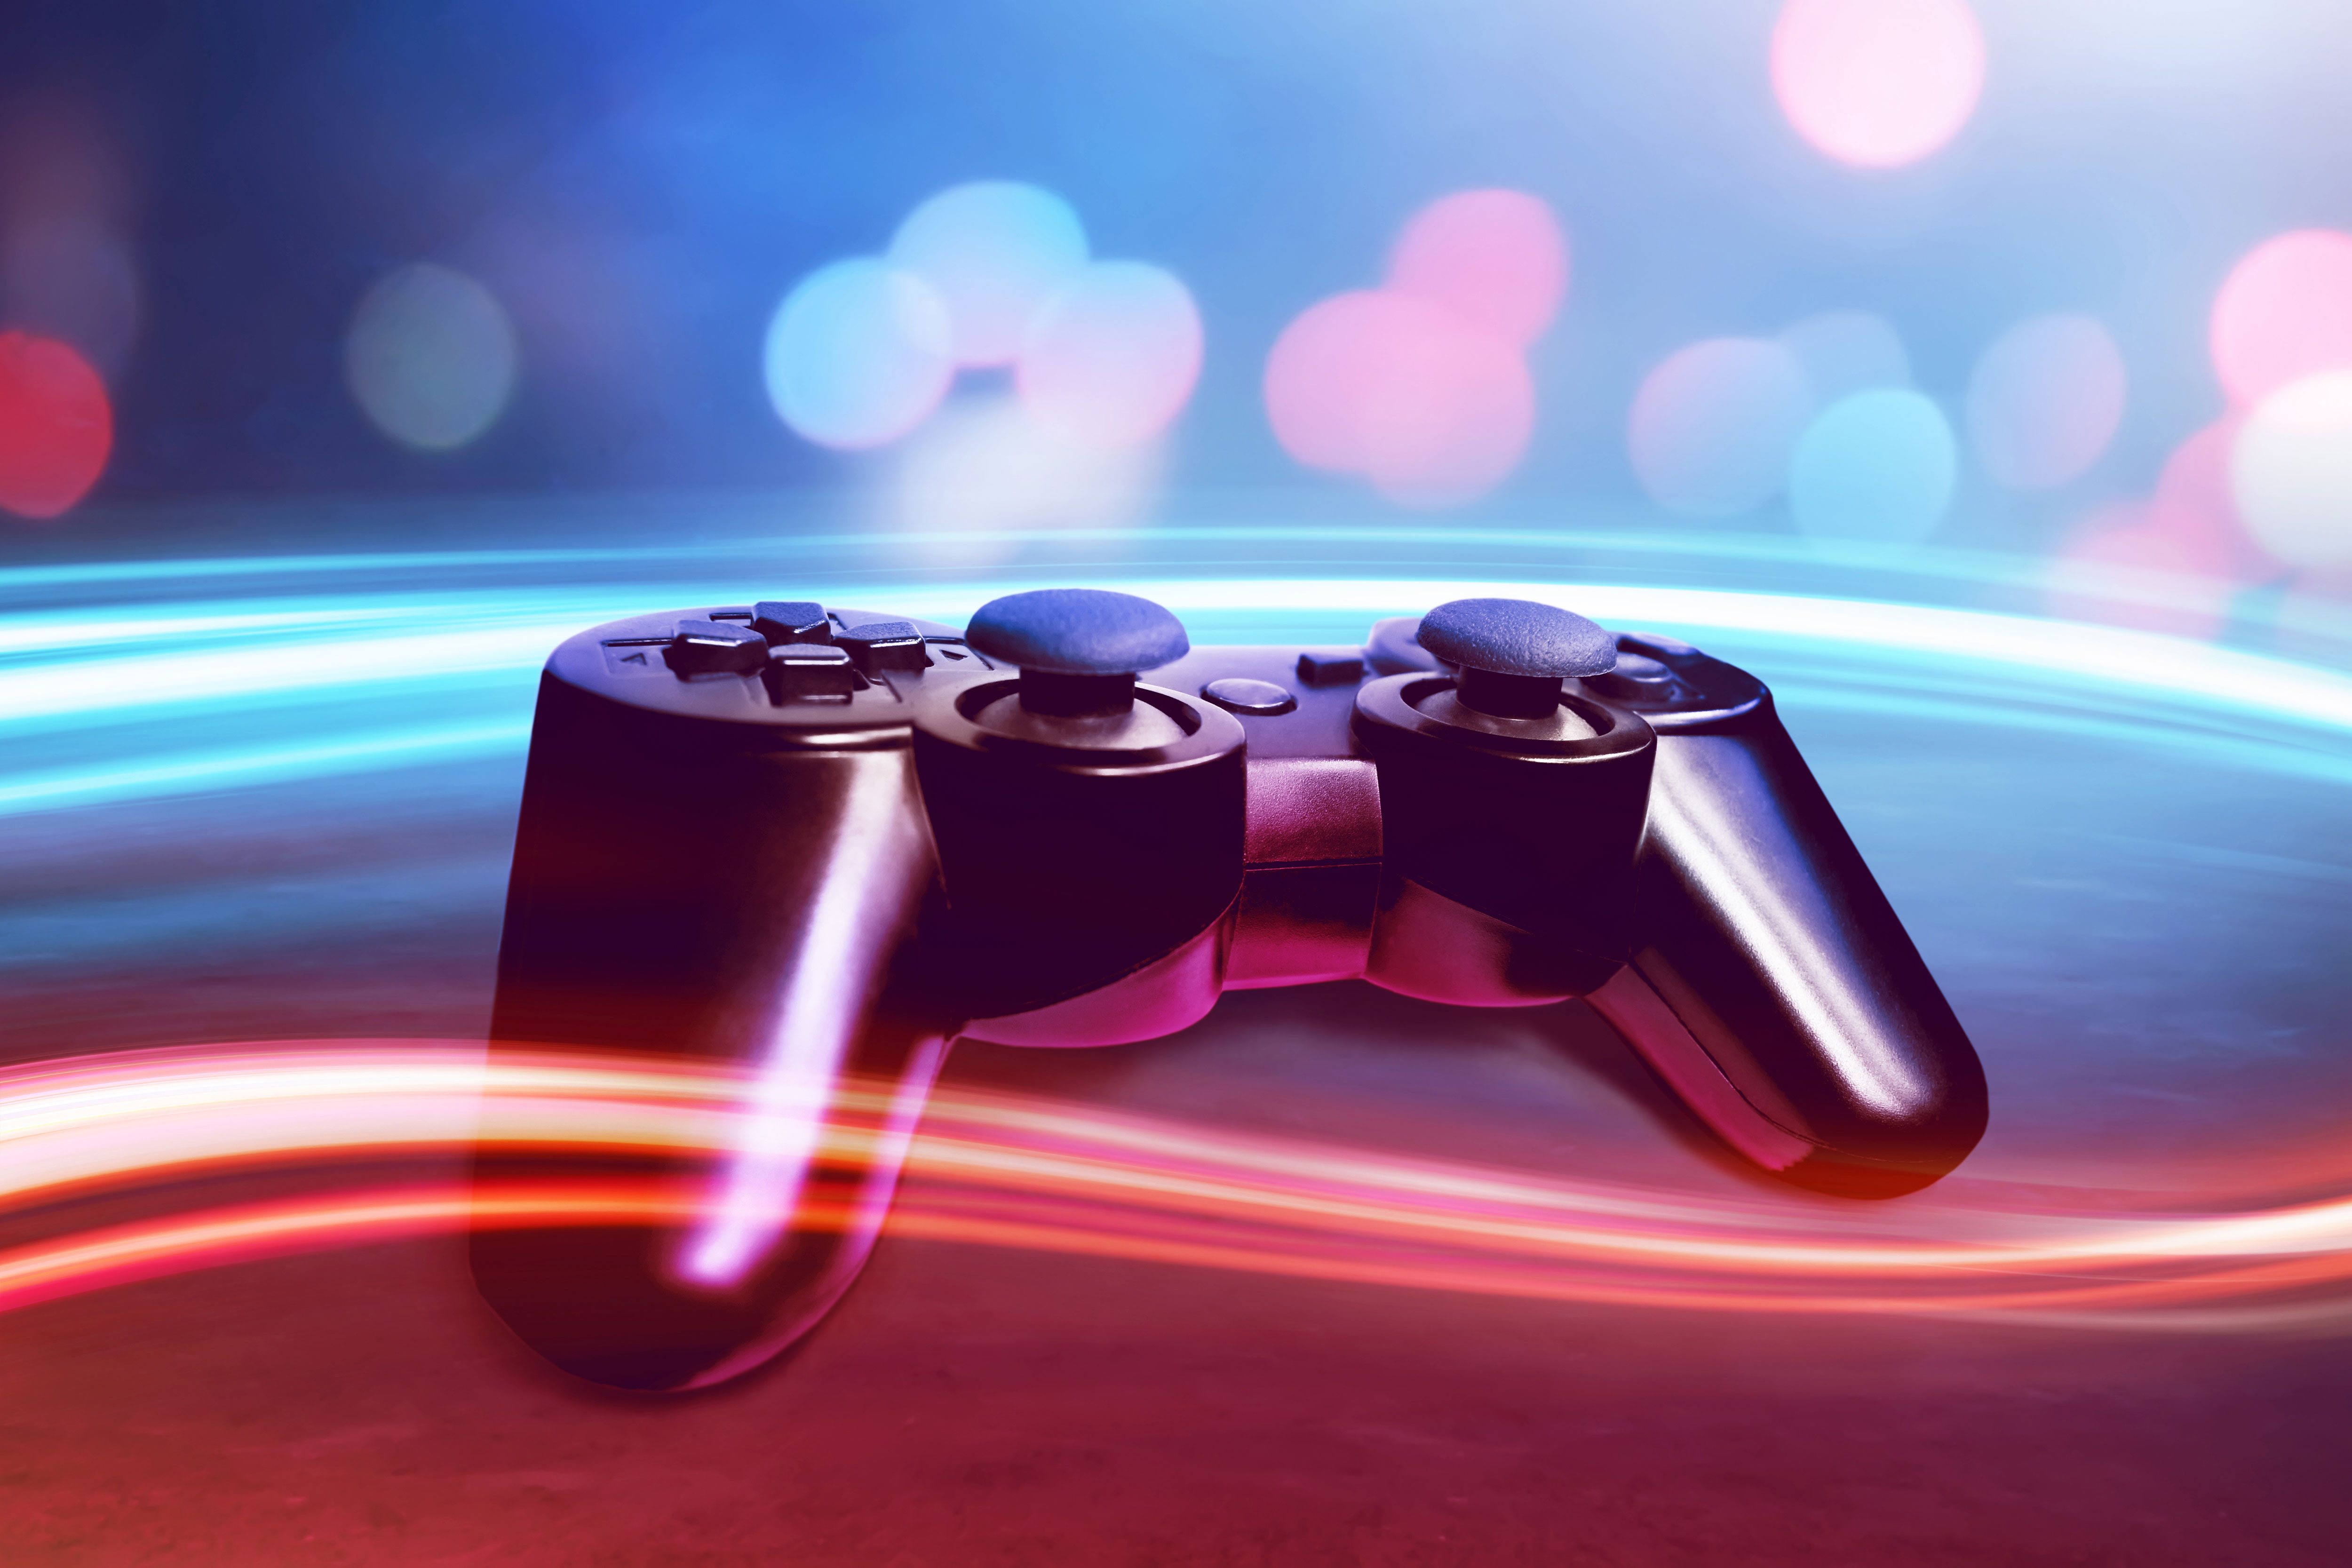 Video-game-controller-with-colorful-light-streaks